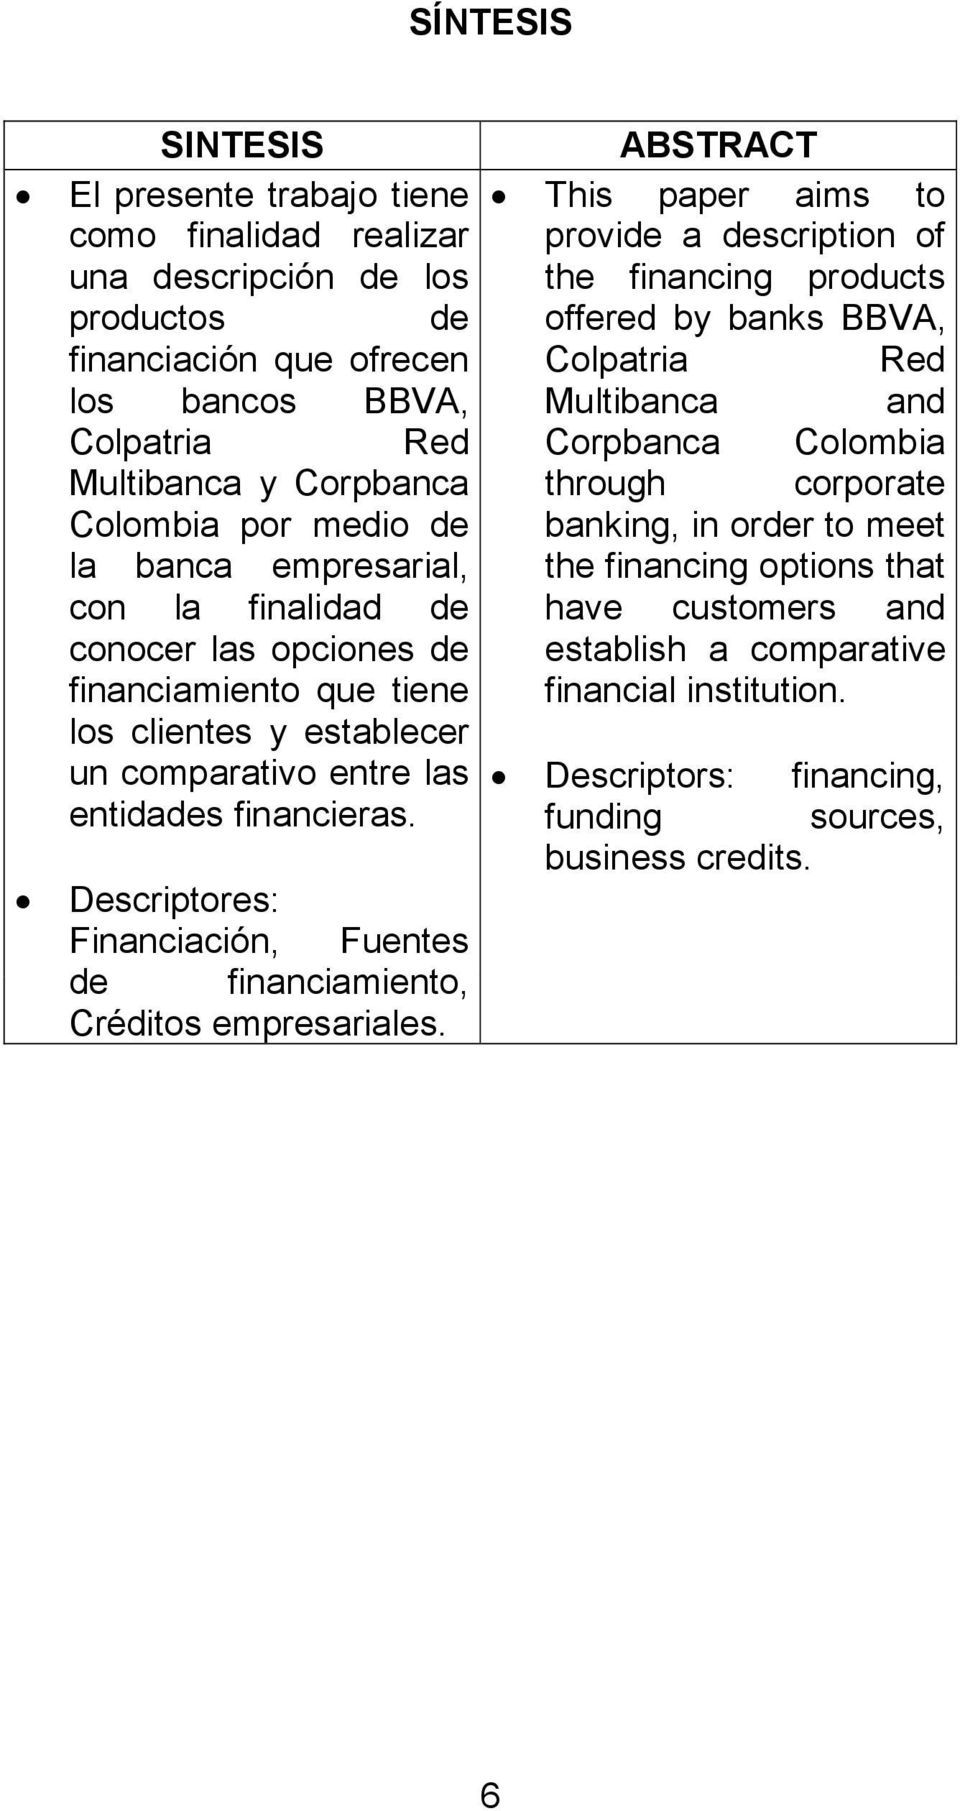 Descriptores: Financiación, Fuentes de financiamiento, Créditos empresariales.